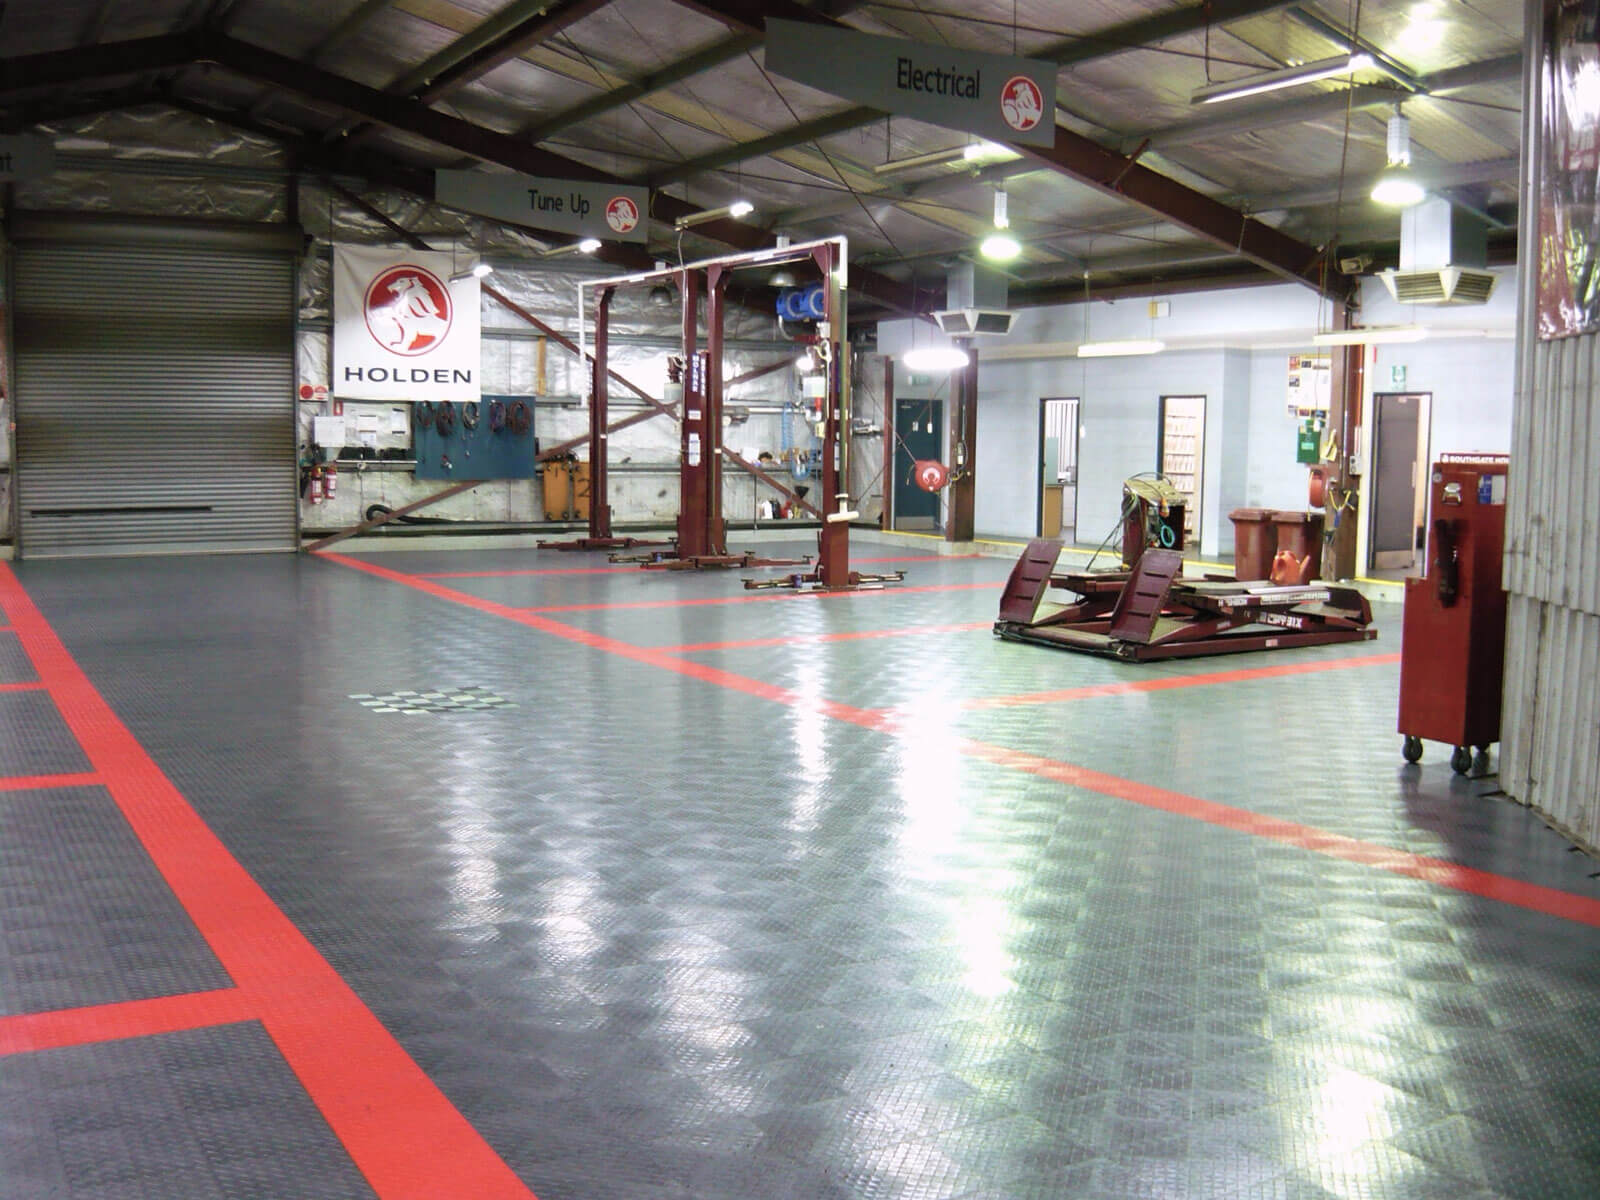 Commercial garage using RaceDeck Diamond and Free-Flow flooring